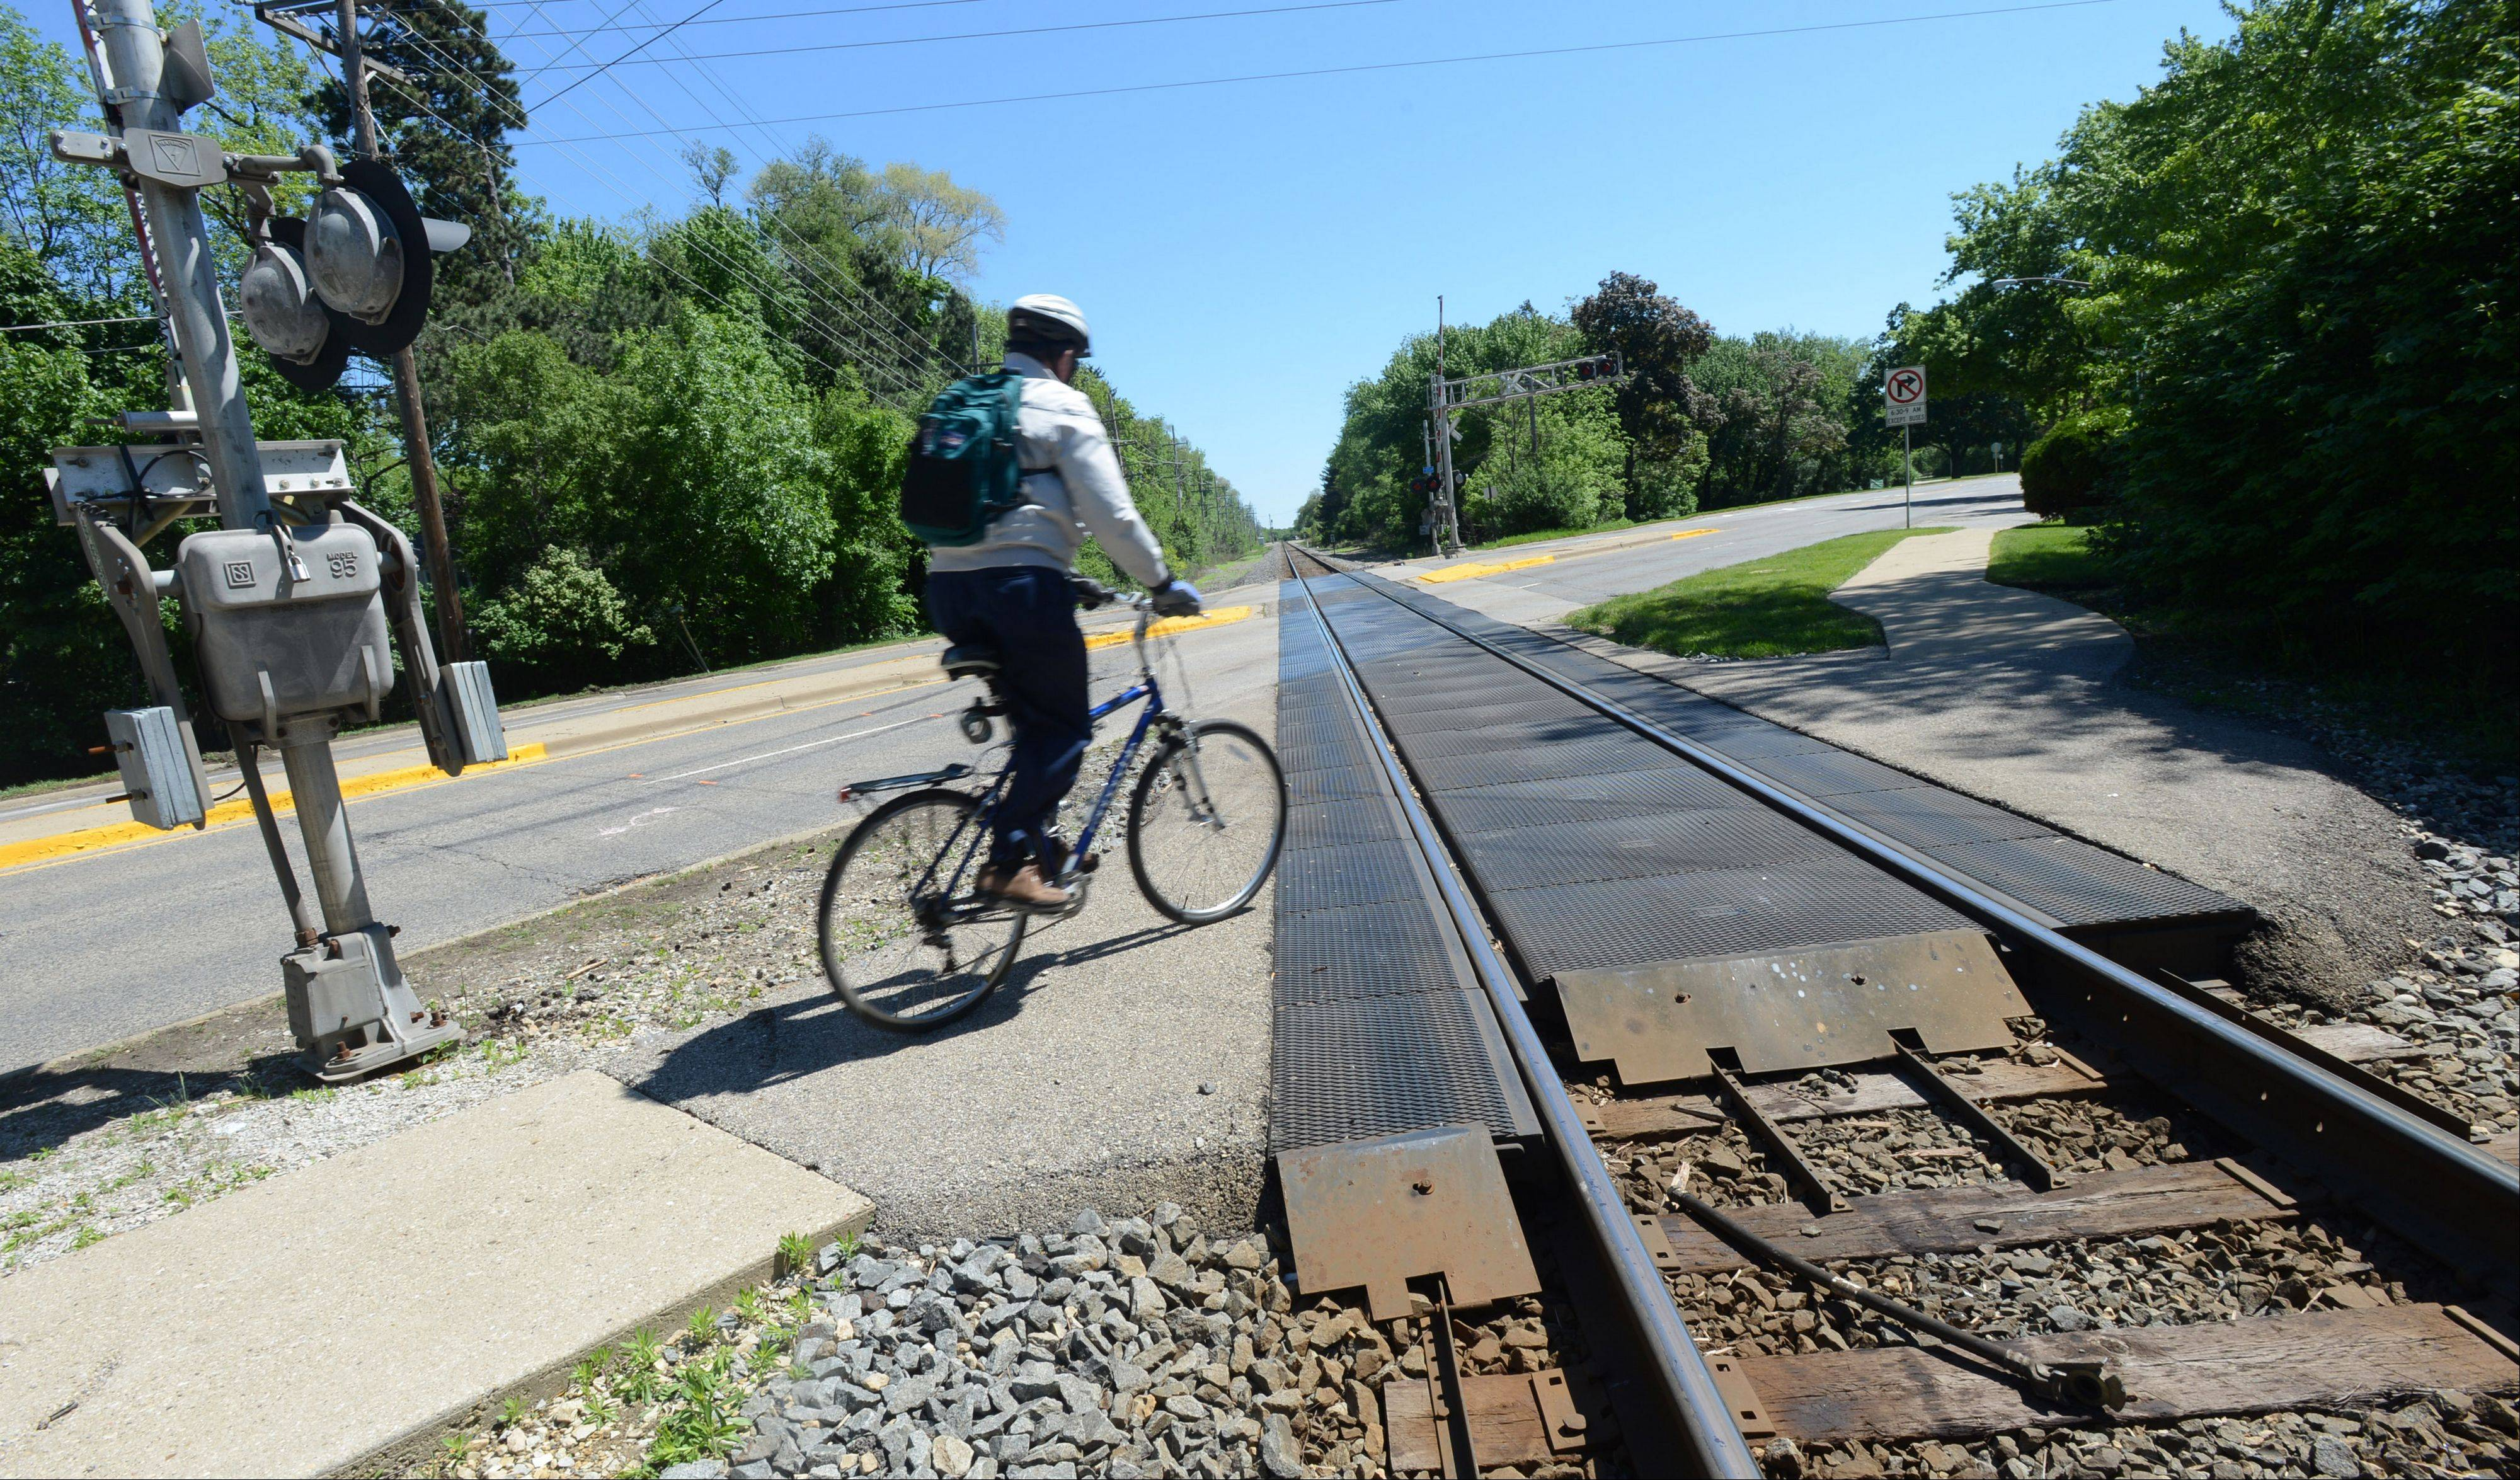 There's a much quieter scene at the CN crossing over Route 14 on Friday.